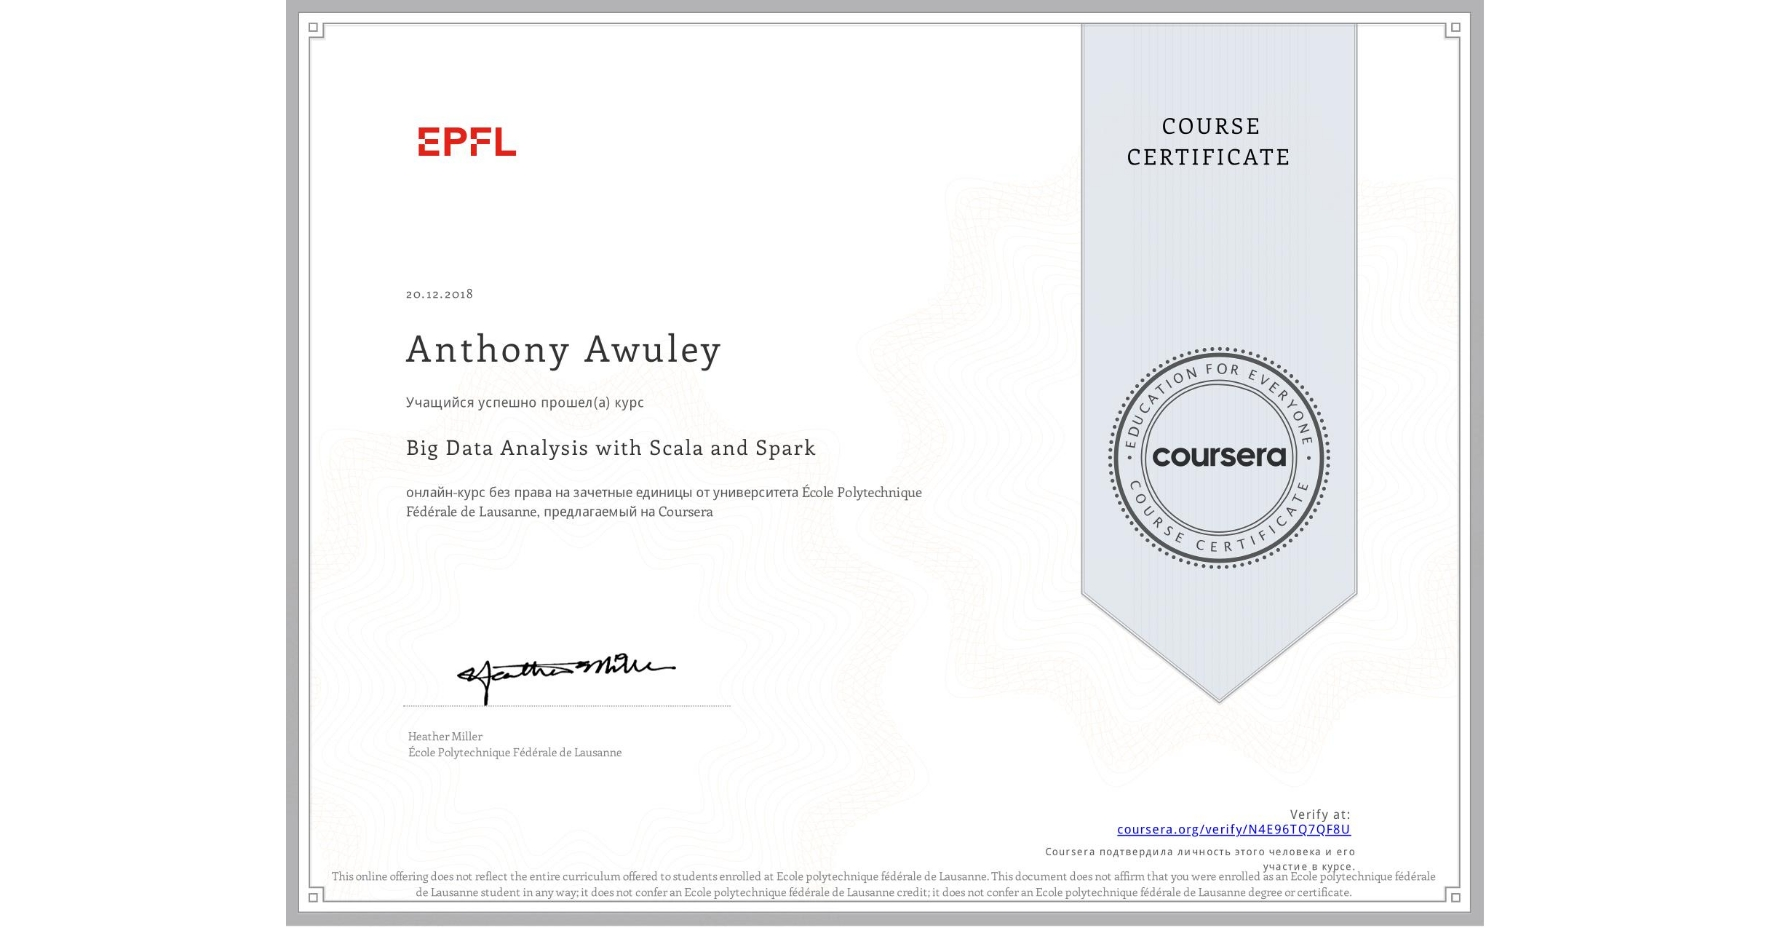 View certificate for Anthony Awuley, Big Data Analysis with Scala and Spark, an online non-credit course authorized by École Polytechnique Fédérale de Lausanne and offered through Coursera